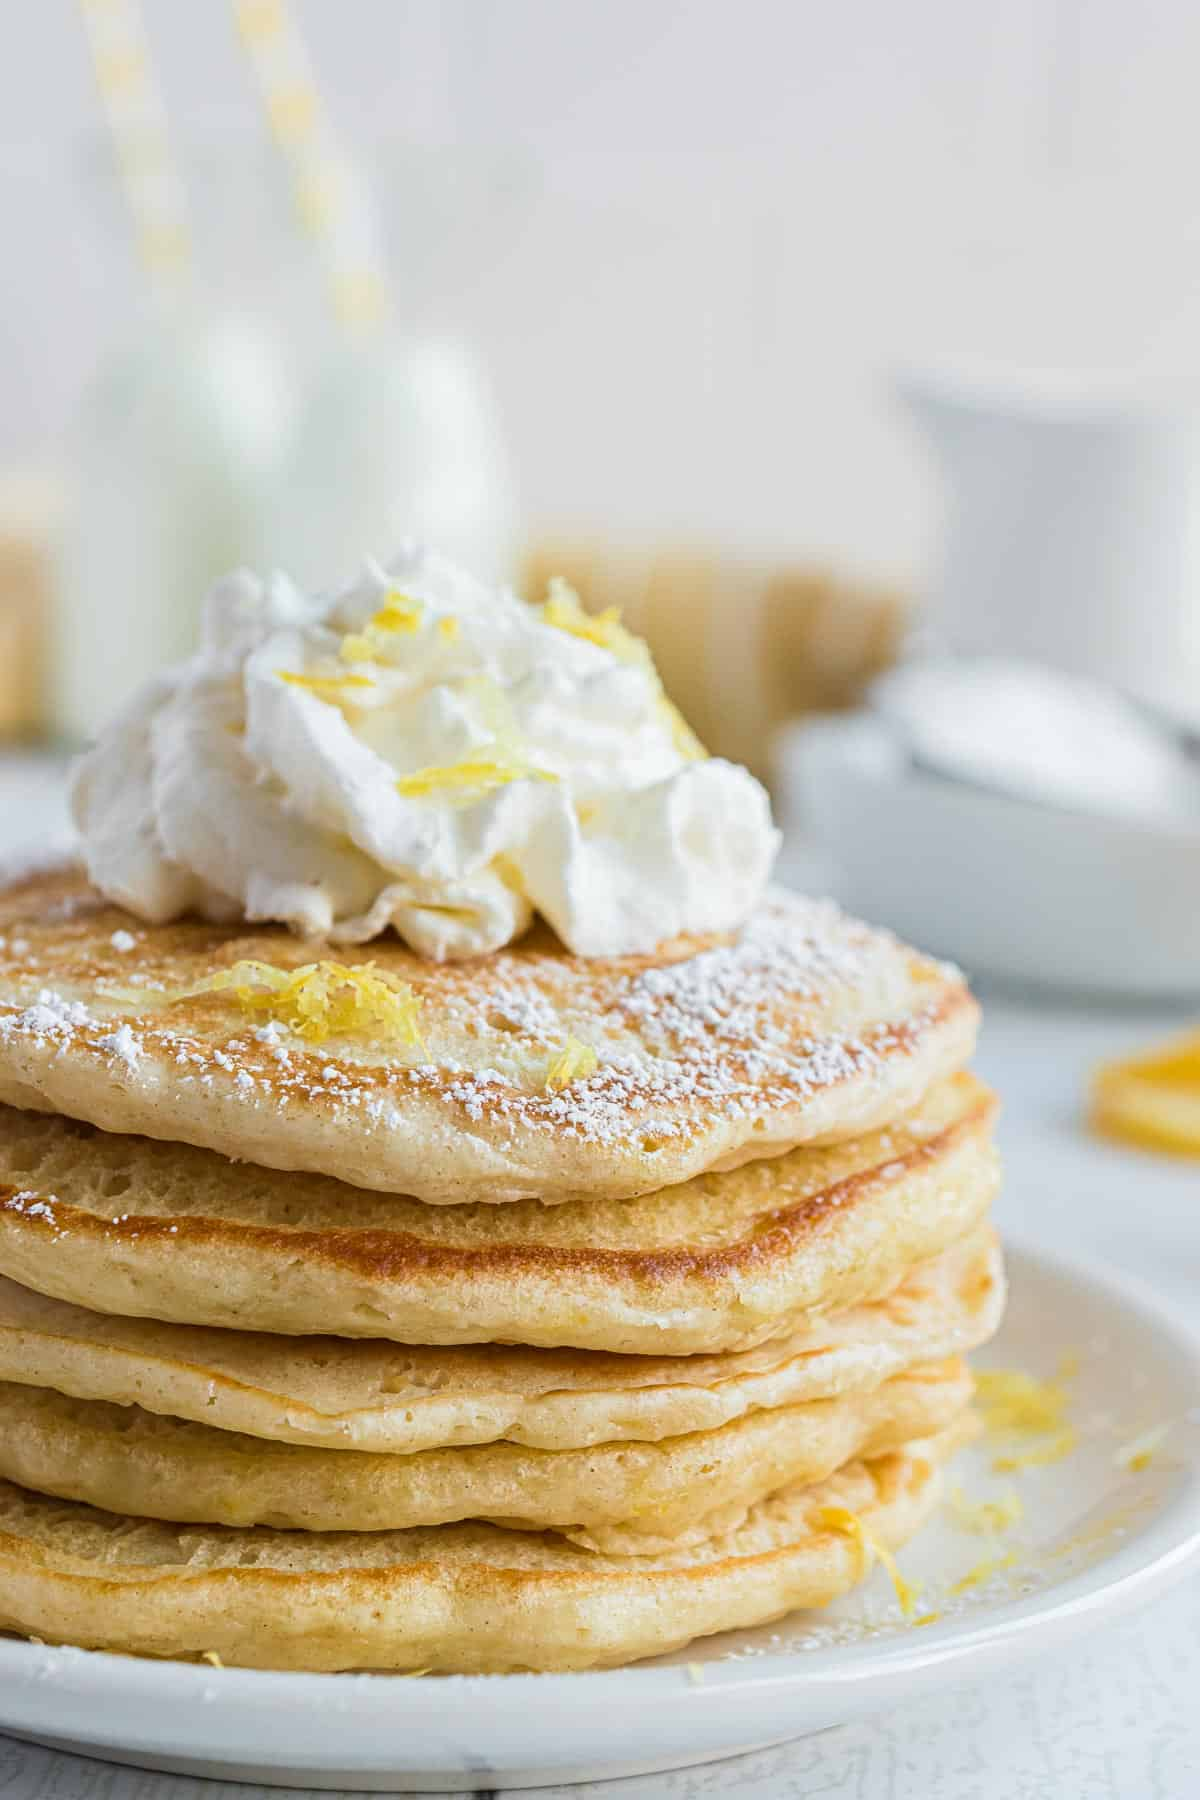 Stack of pancakes topped with whipped cream and lemon zest.